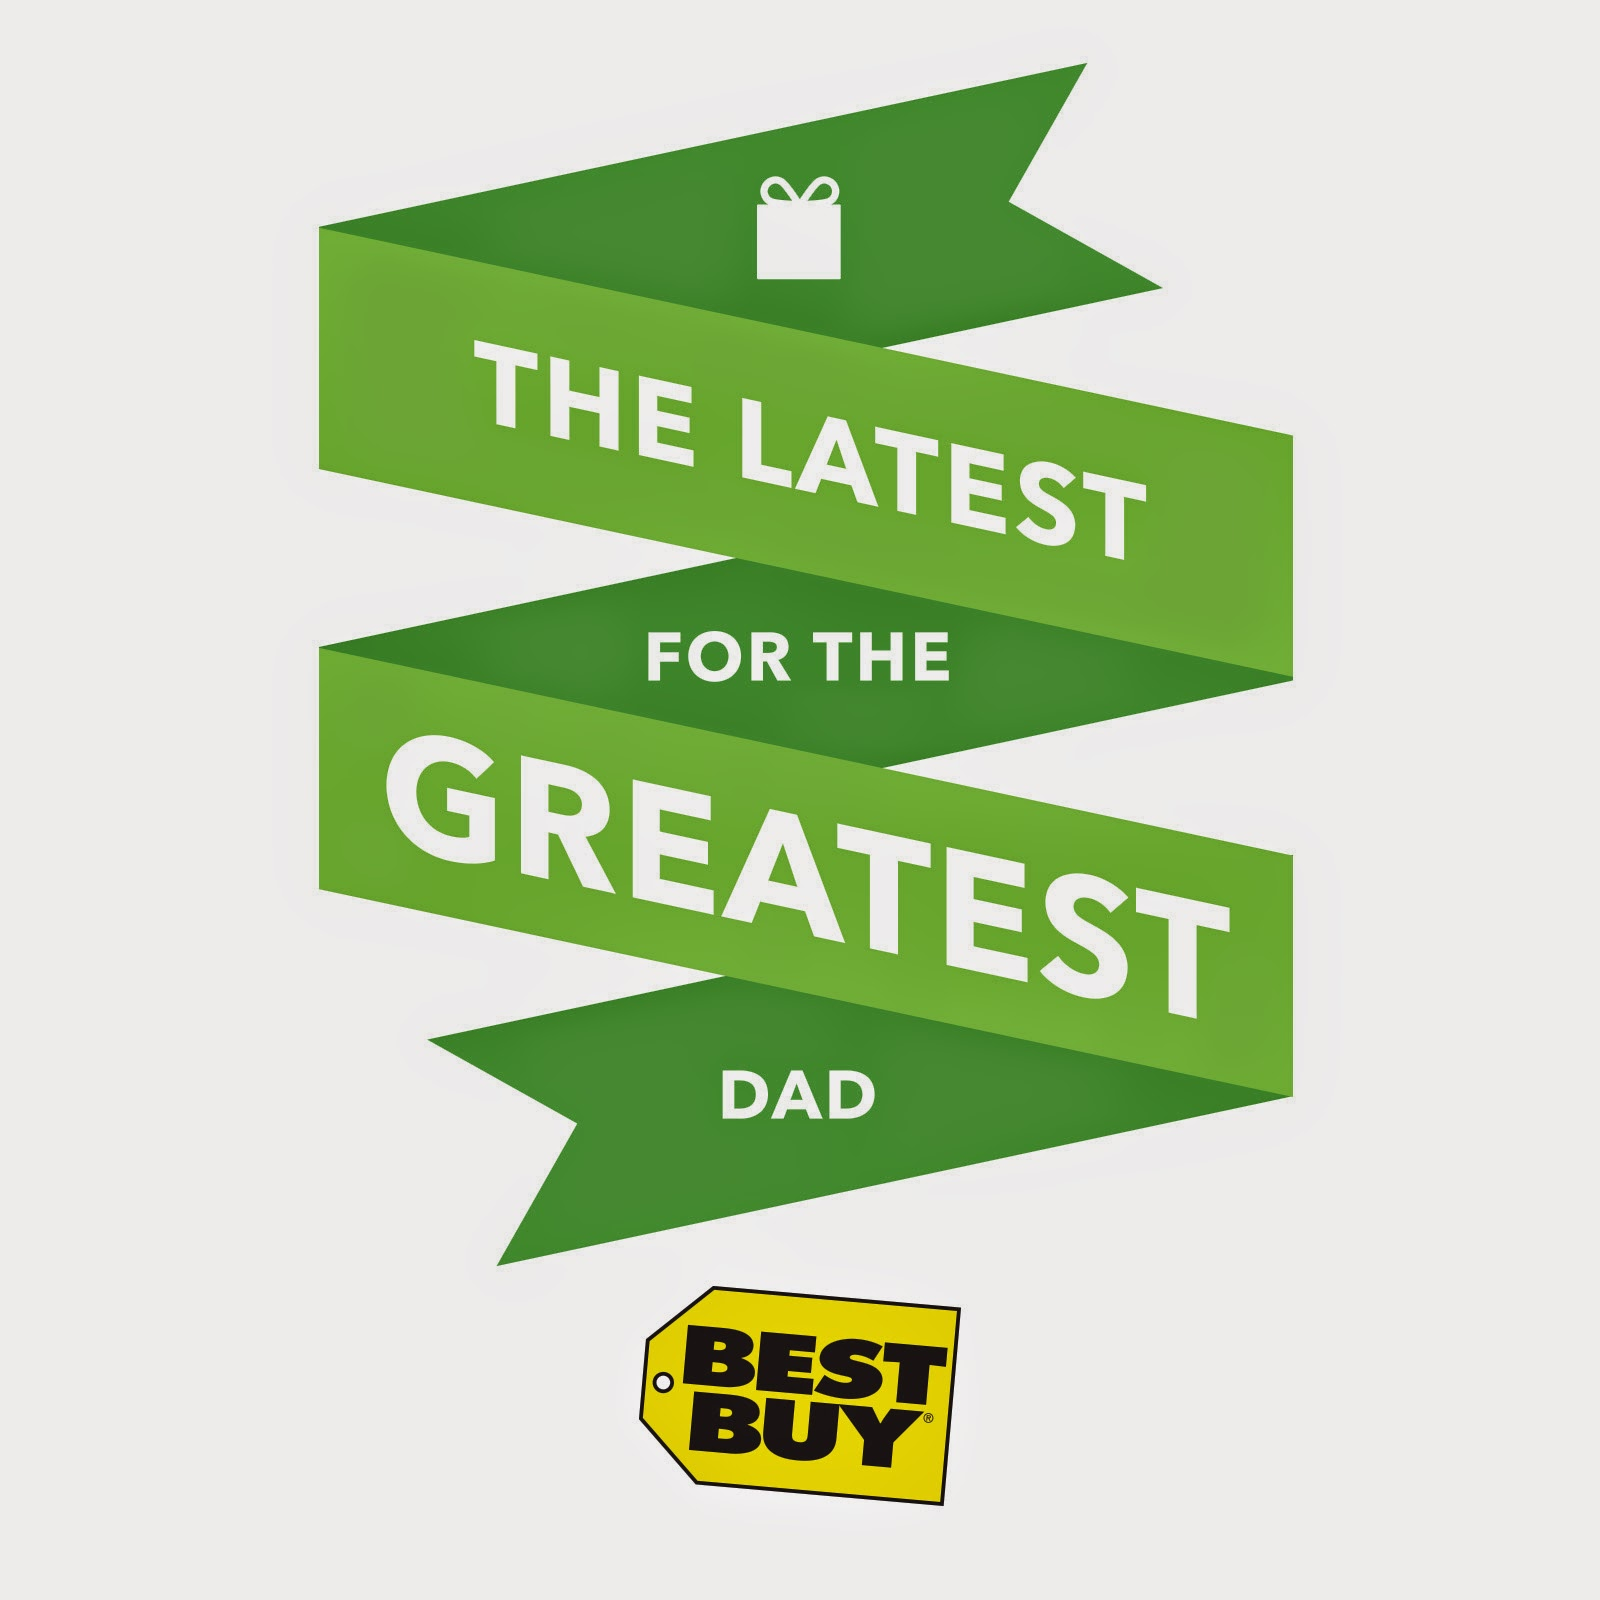 check out some great gifts for dad for fathers day bestbuy greatestdad - Best Christmas Gifts For Dad 2014